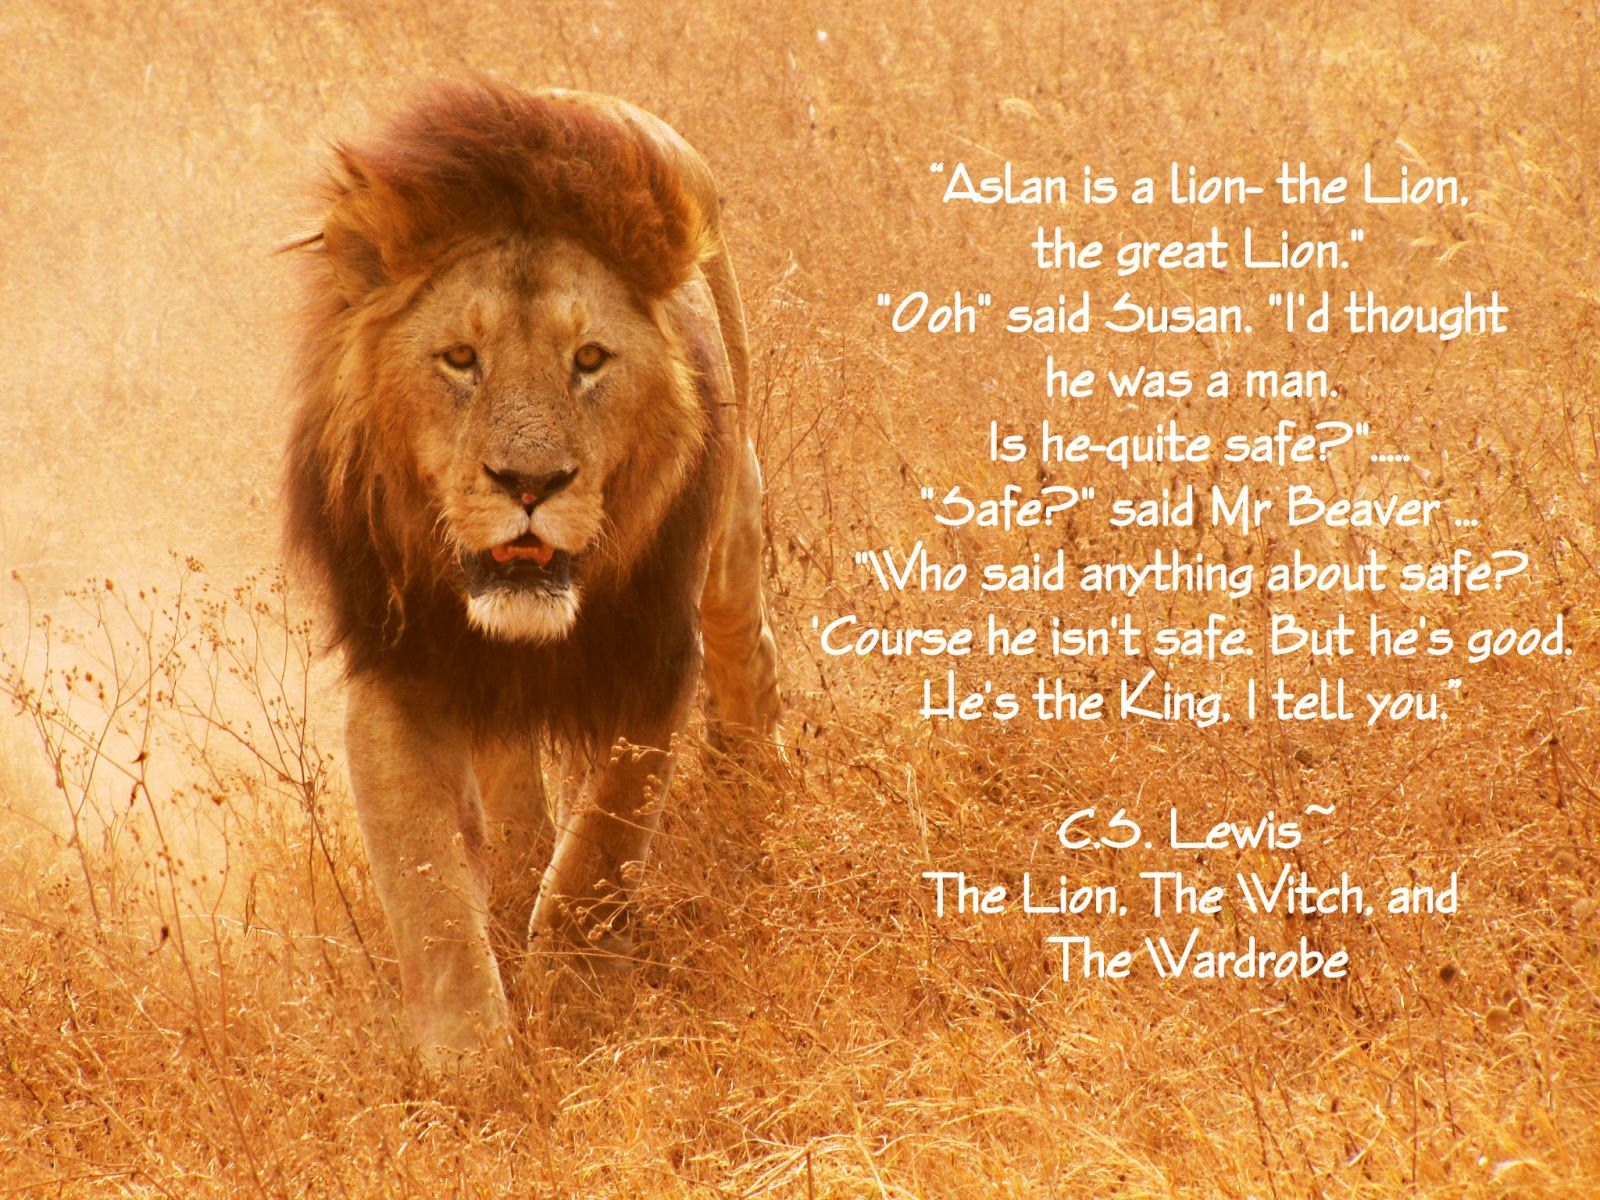 c. s. lewis quotes | This C.S Lewis quote changed and shaped my ... for Narnia Aslan Quotes  53kxo